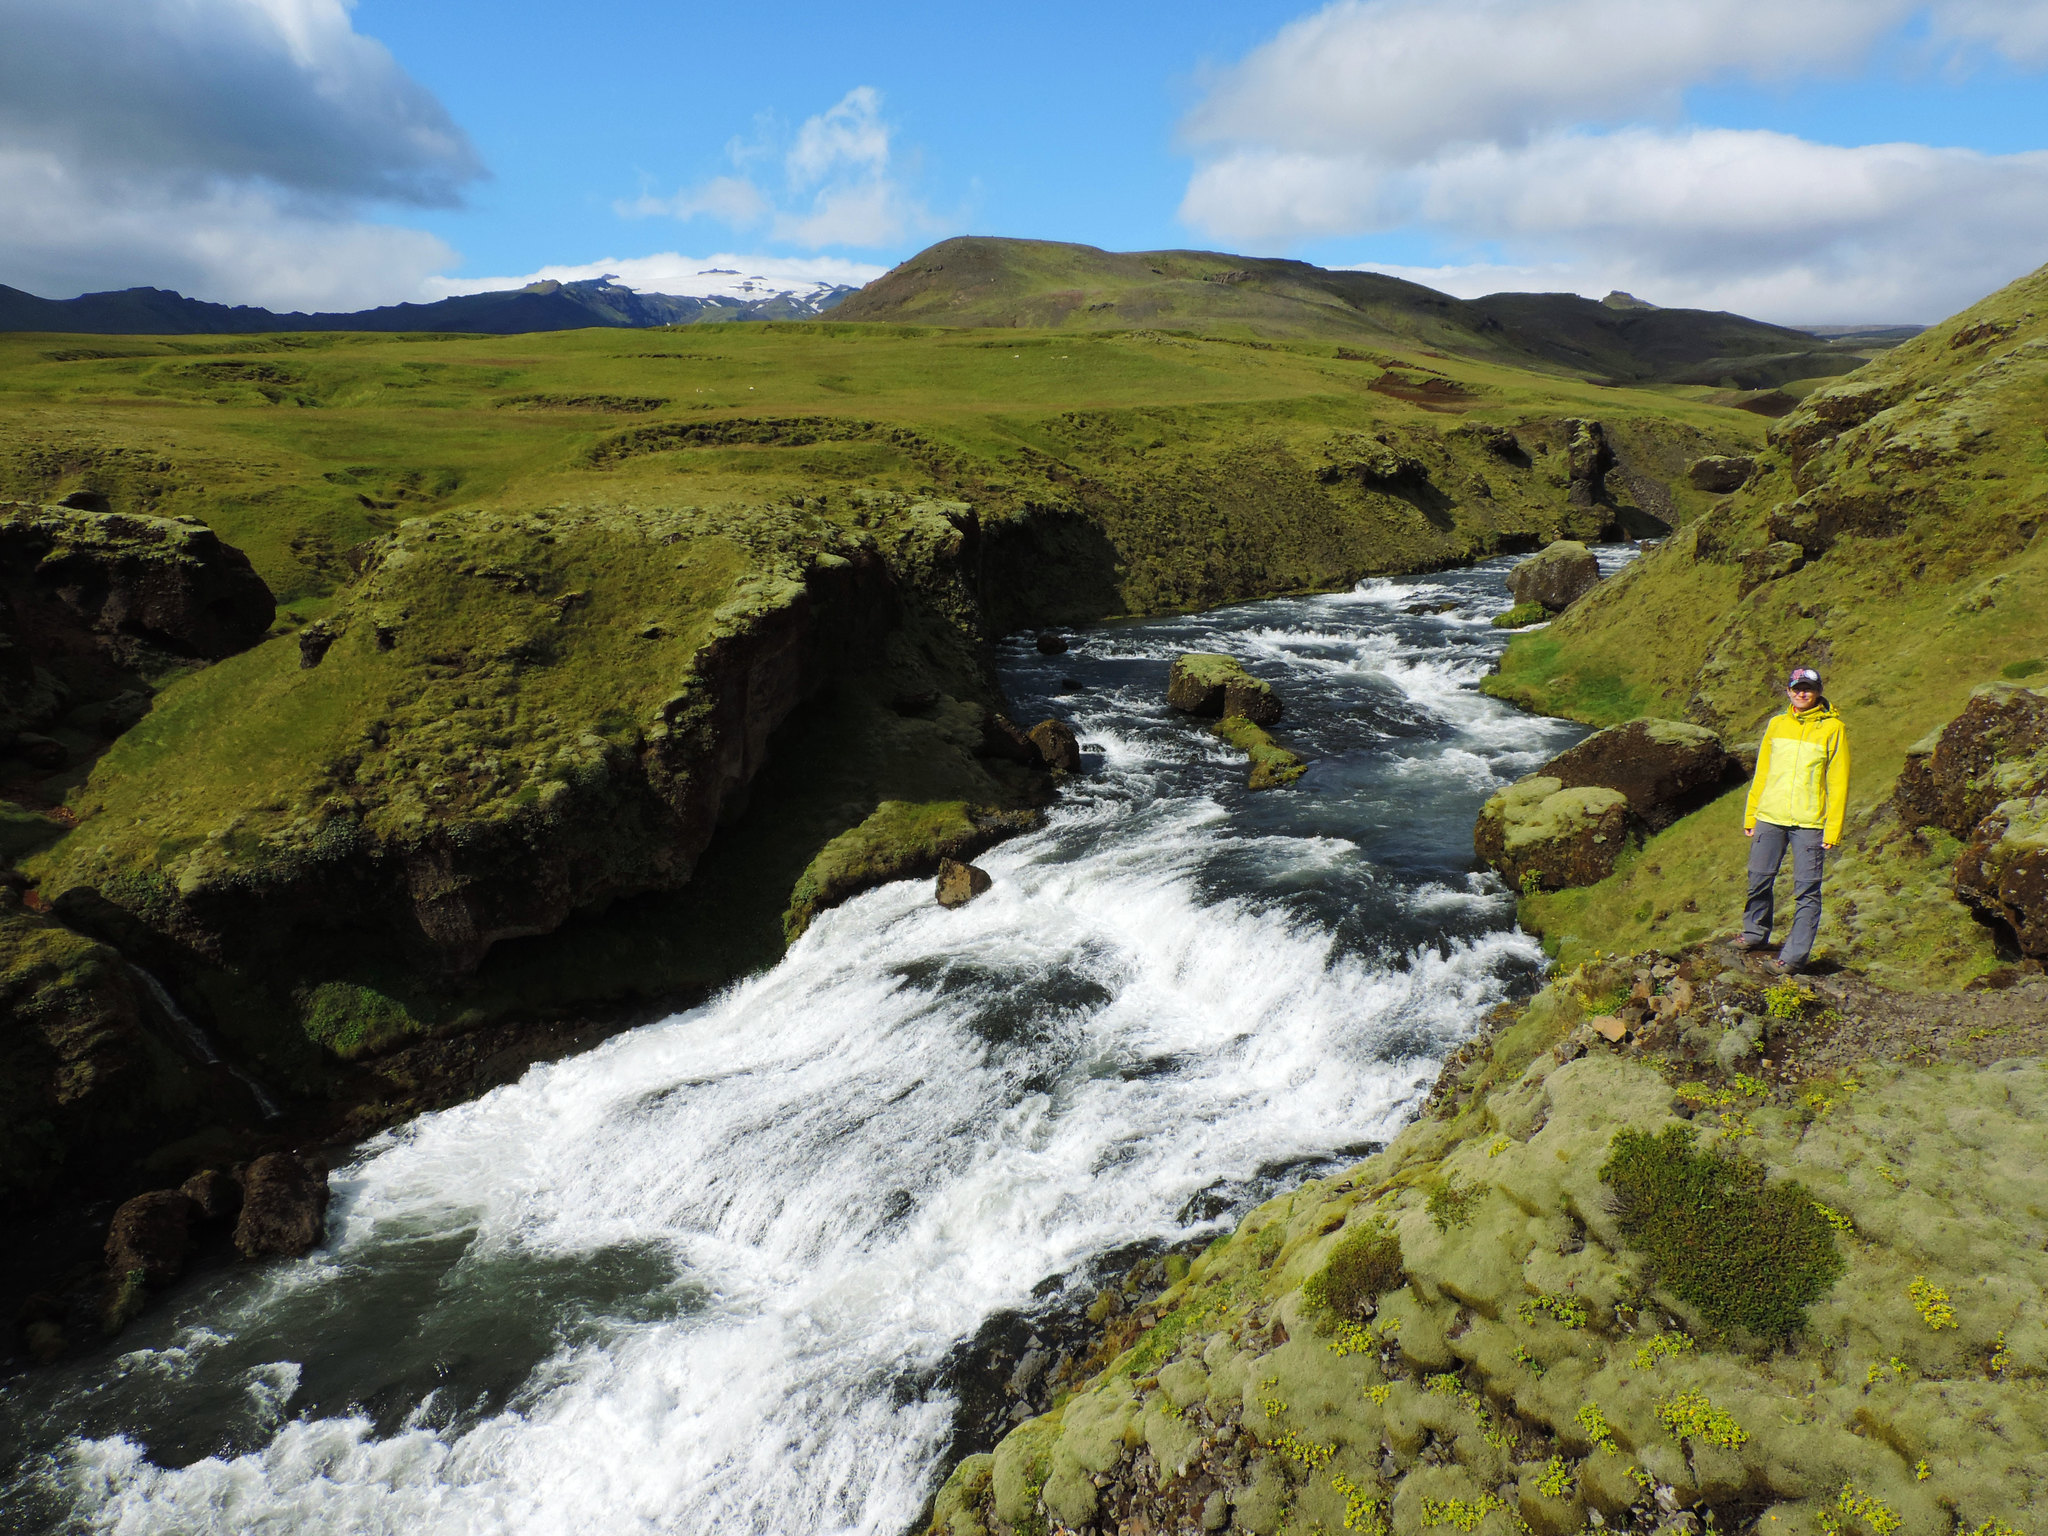 Iceland On Budget: Hiking in Skógar Valley, Southern Iceland